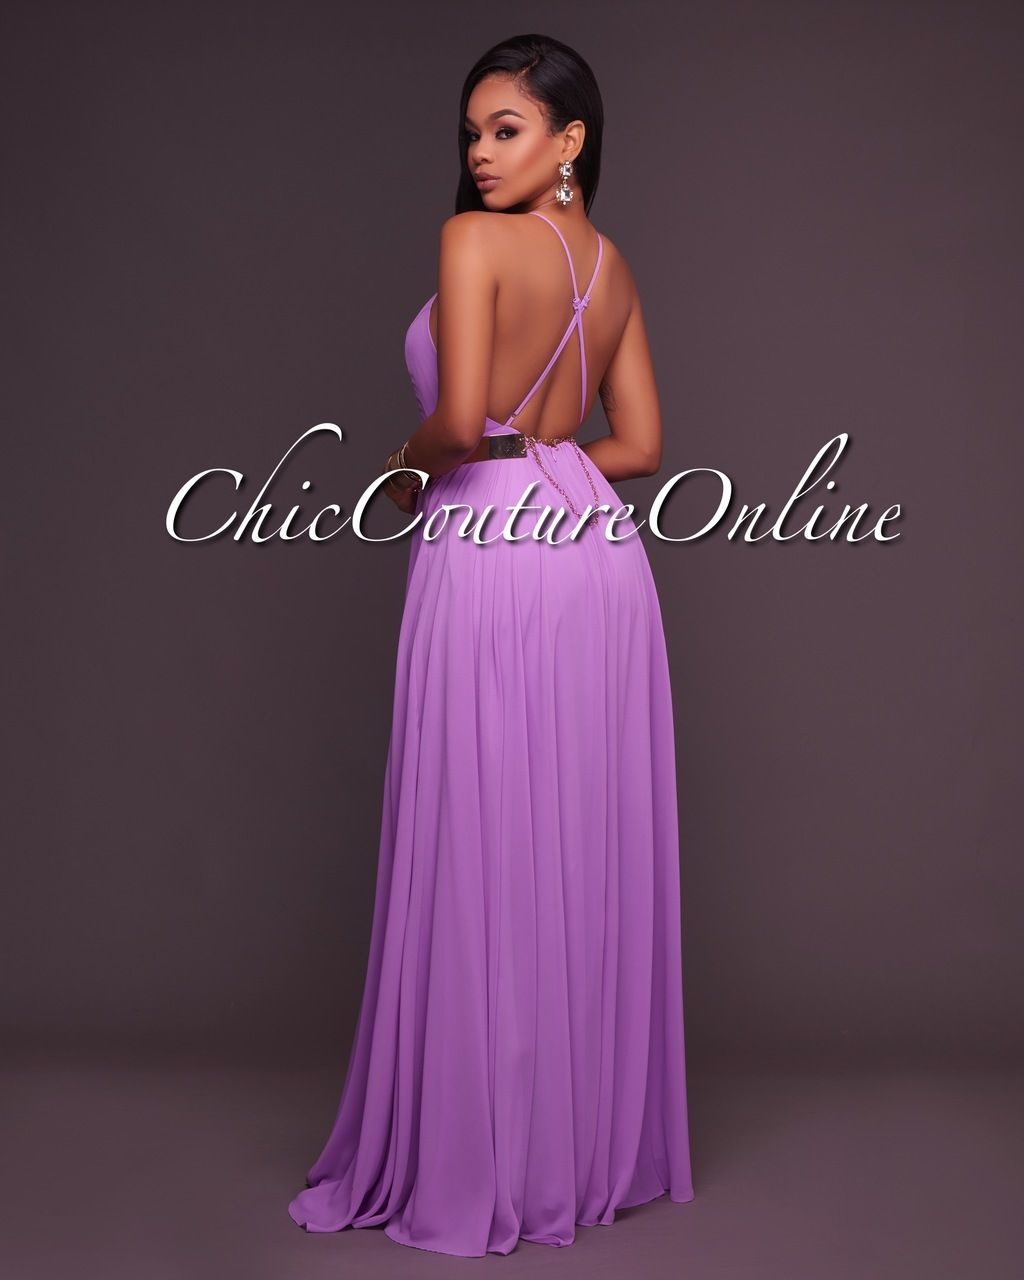 Chic Couture Online - Divine Lilac CrissCross Back Maxi Dress, (http ...